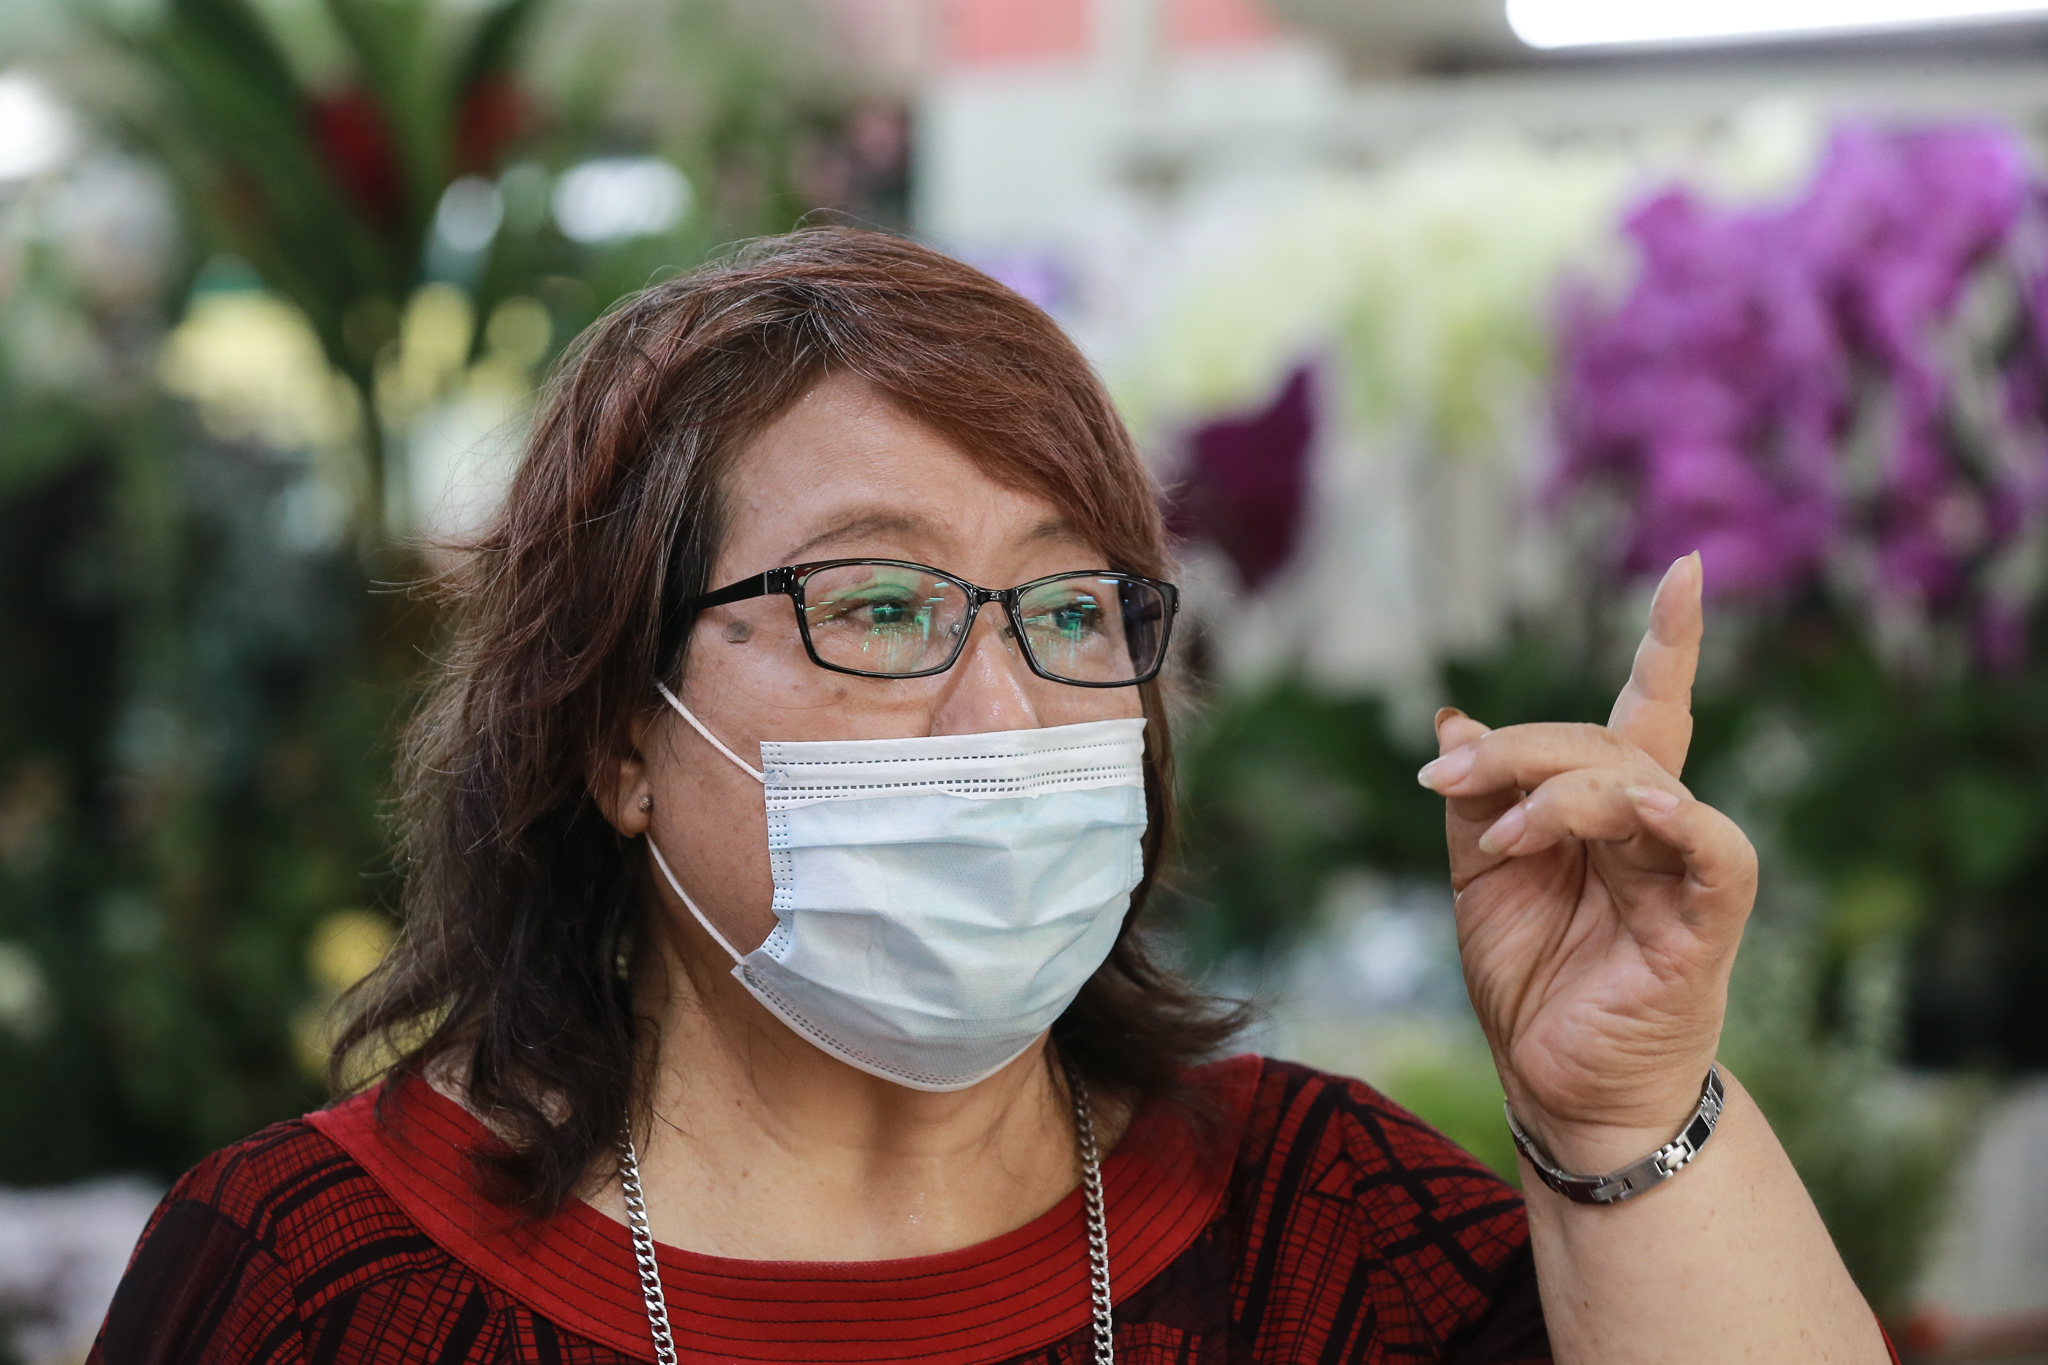 Taman Tun Dr Ismail Market Traders Association chairman Jenny Loo speaks to Malay Mail during an interview in Petaling Jaya May 19, 2020. — Picture by Ahmad Zamzahuri